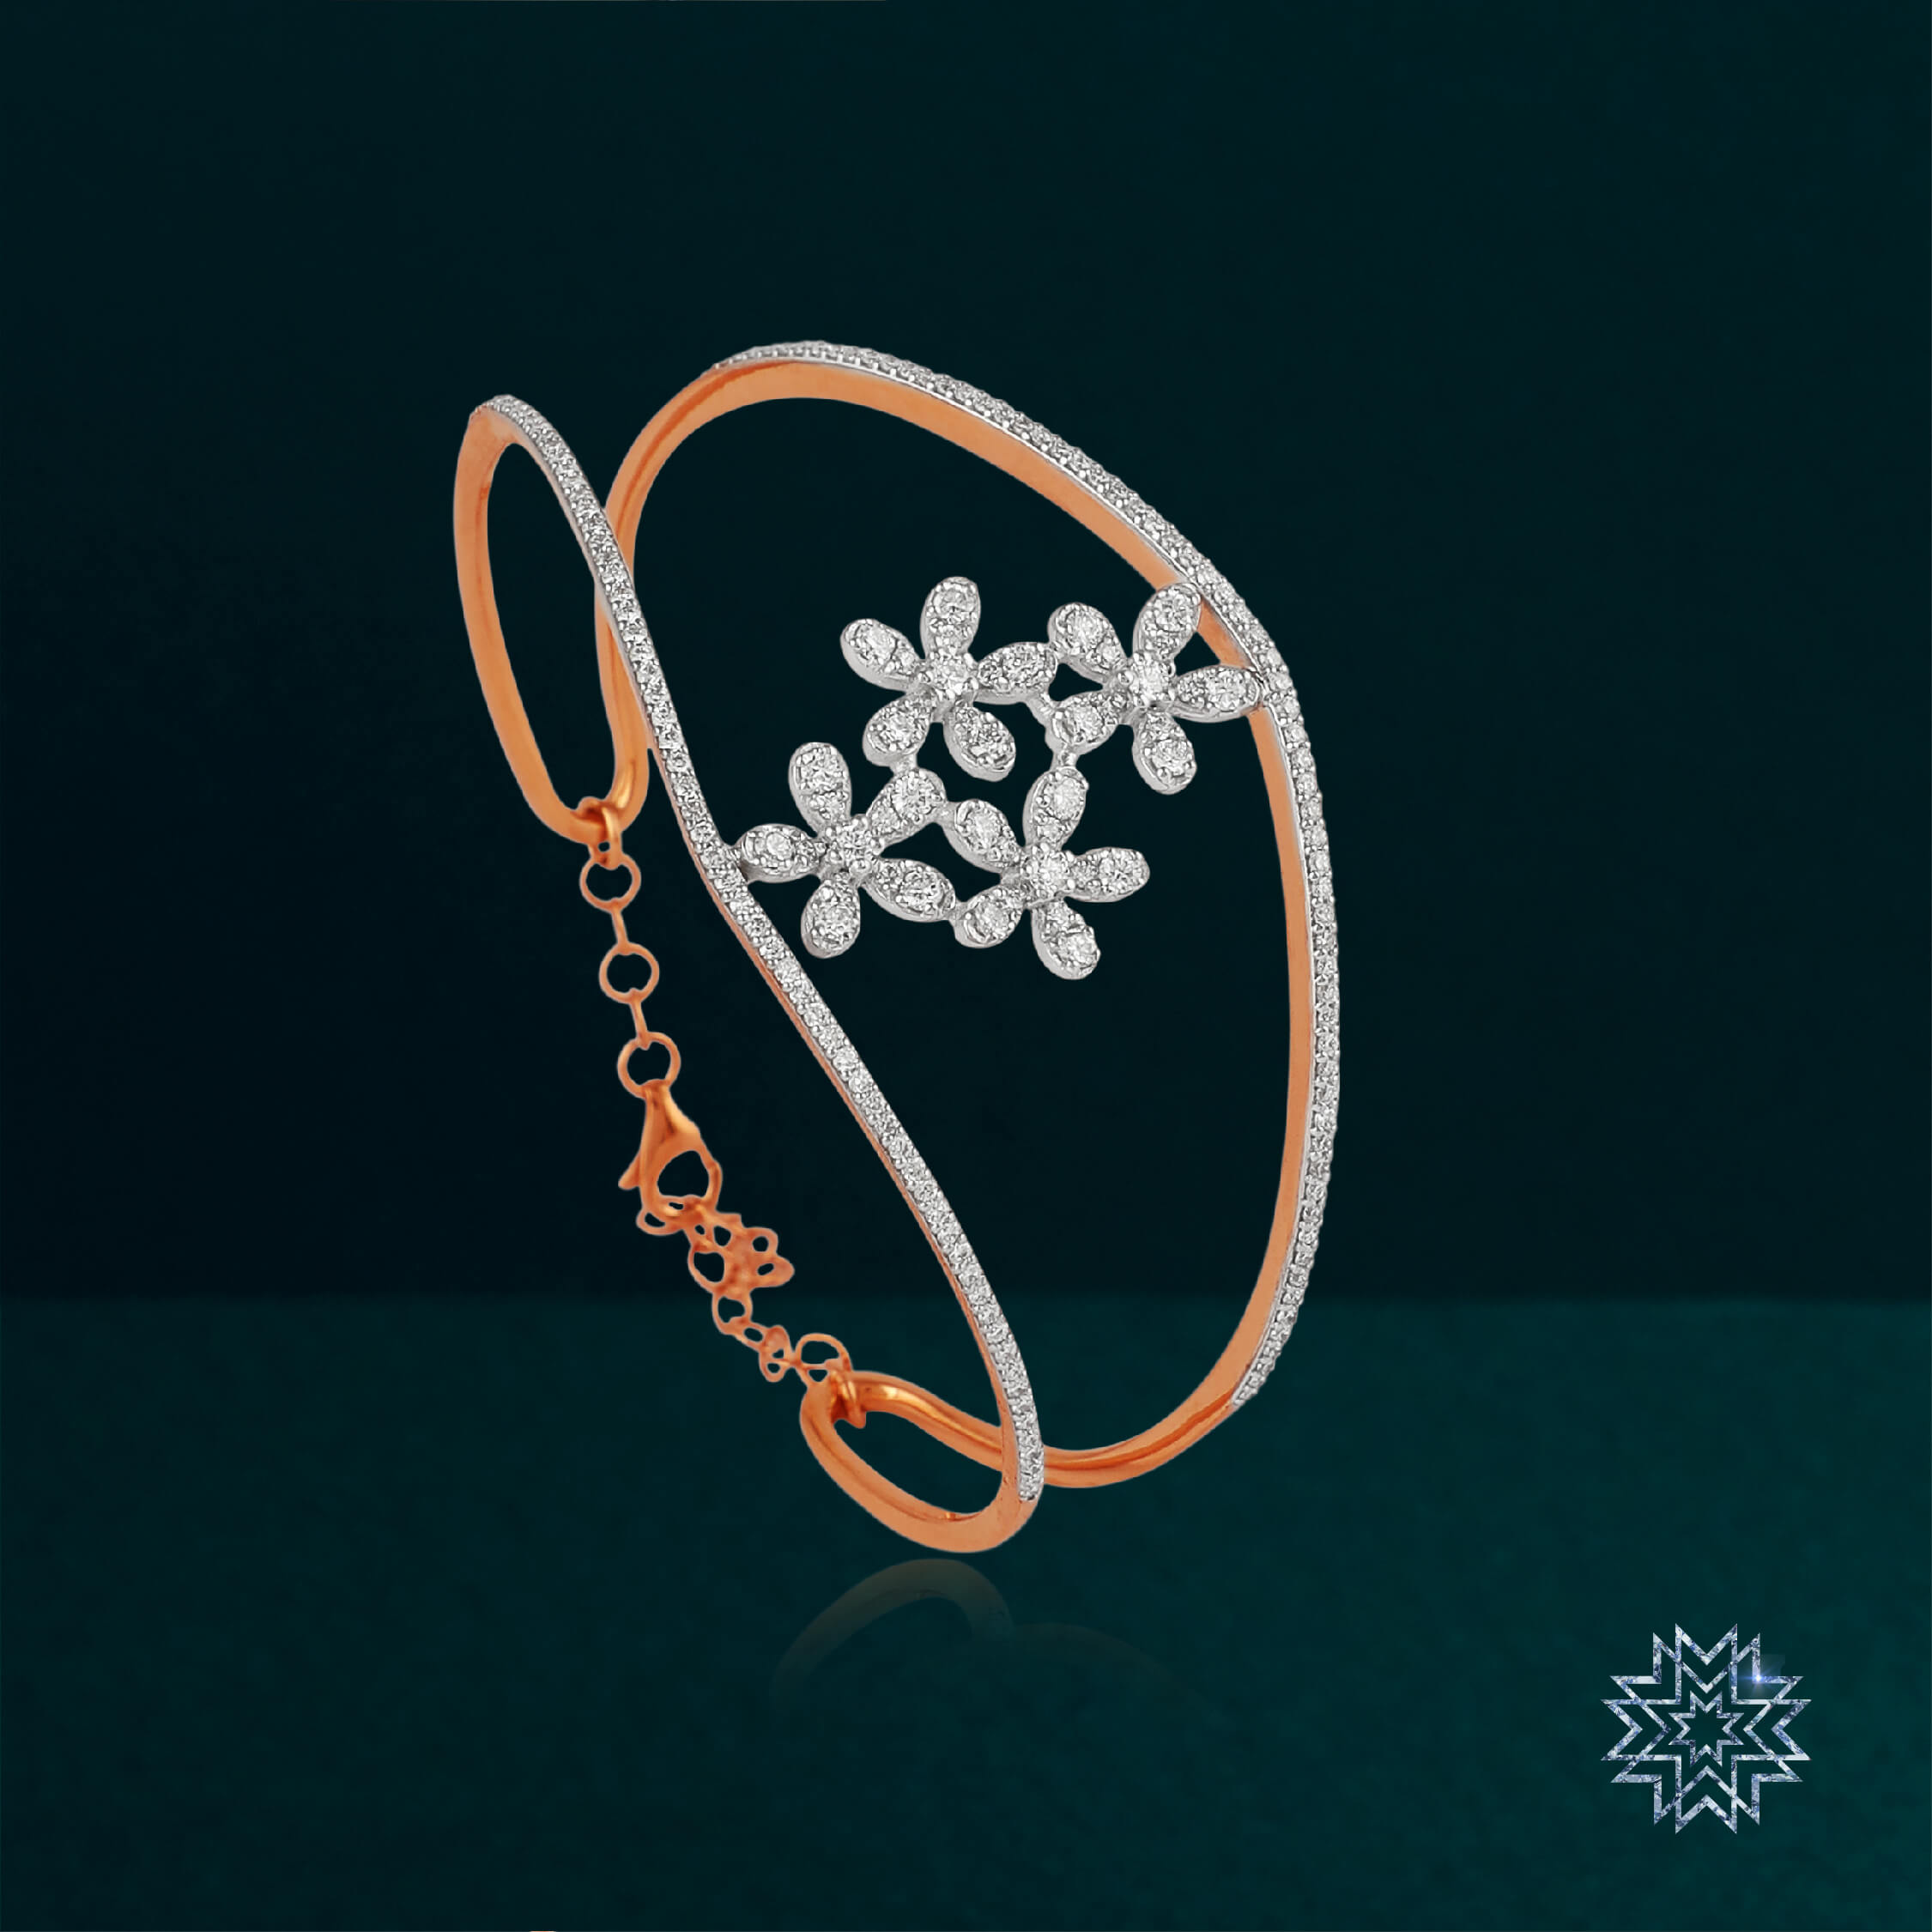 A bracelet that defines the diva within you- Hard to find, hard to please.